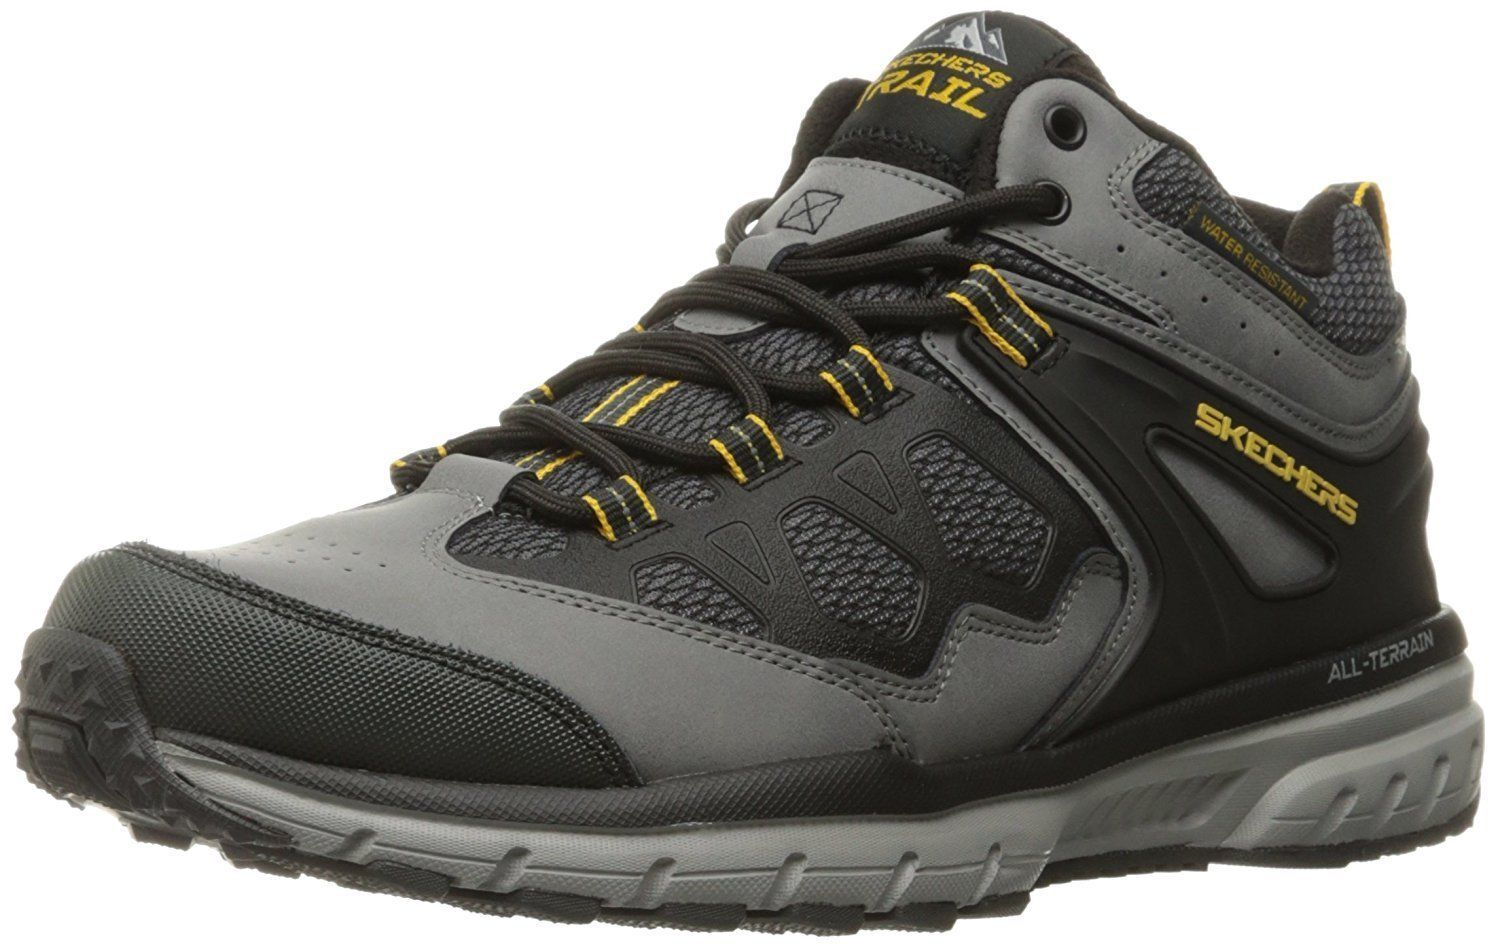 new product 298f6 a746d Uomo Skechers 51563 Geo-Trek Sequencer 51563 Skechers CCBK  BR3 dcf5ff